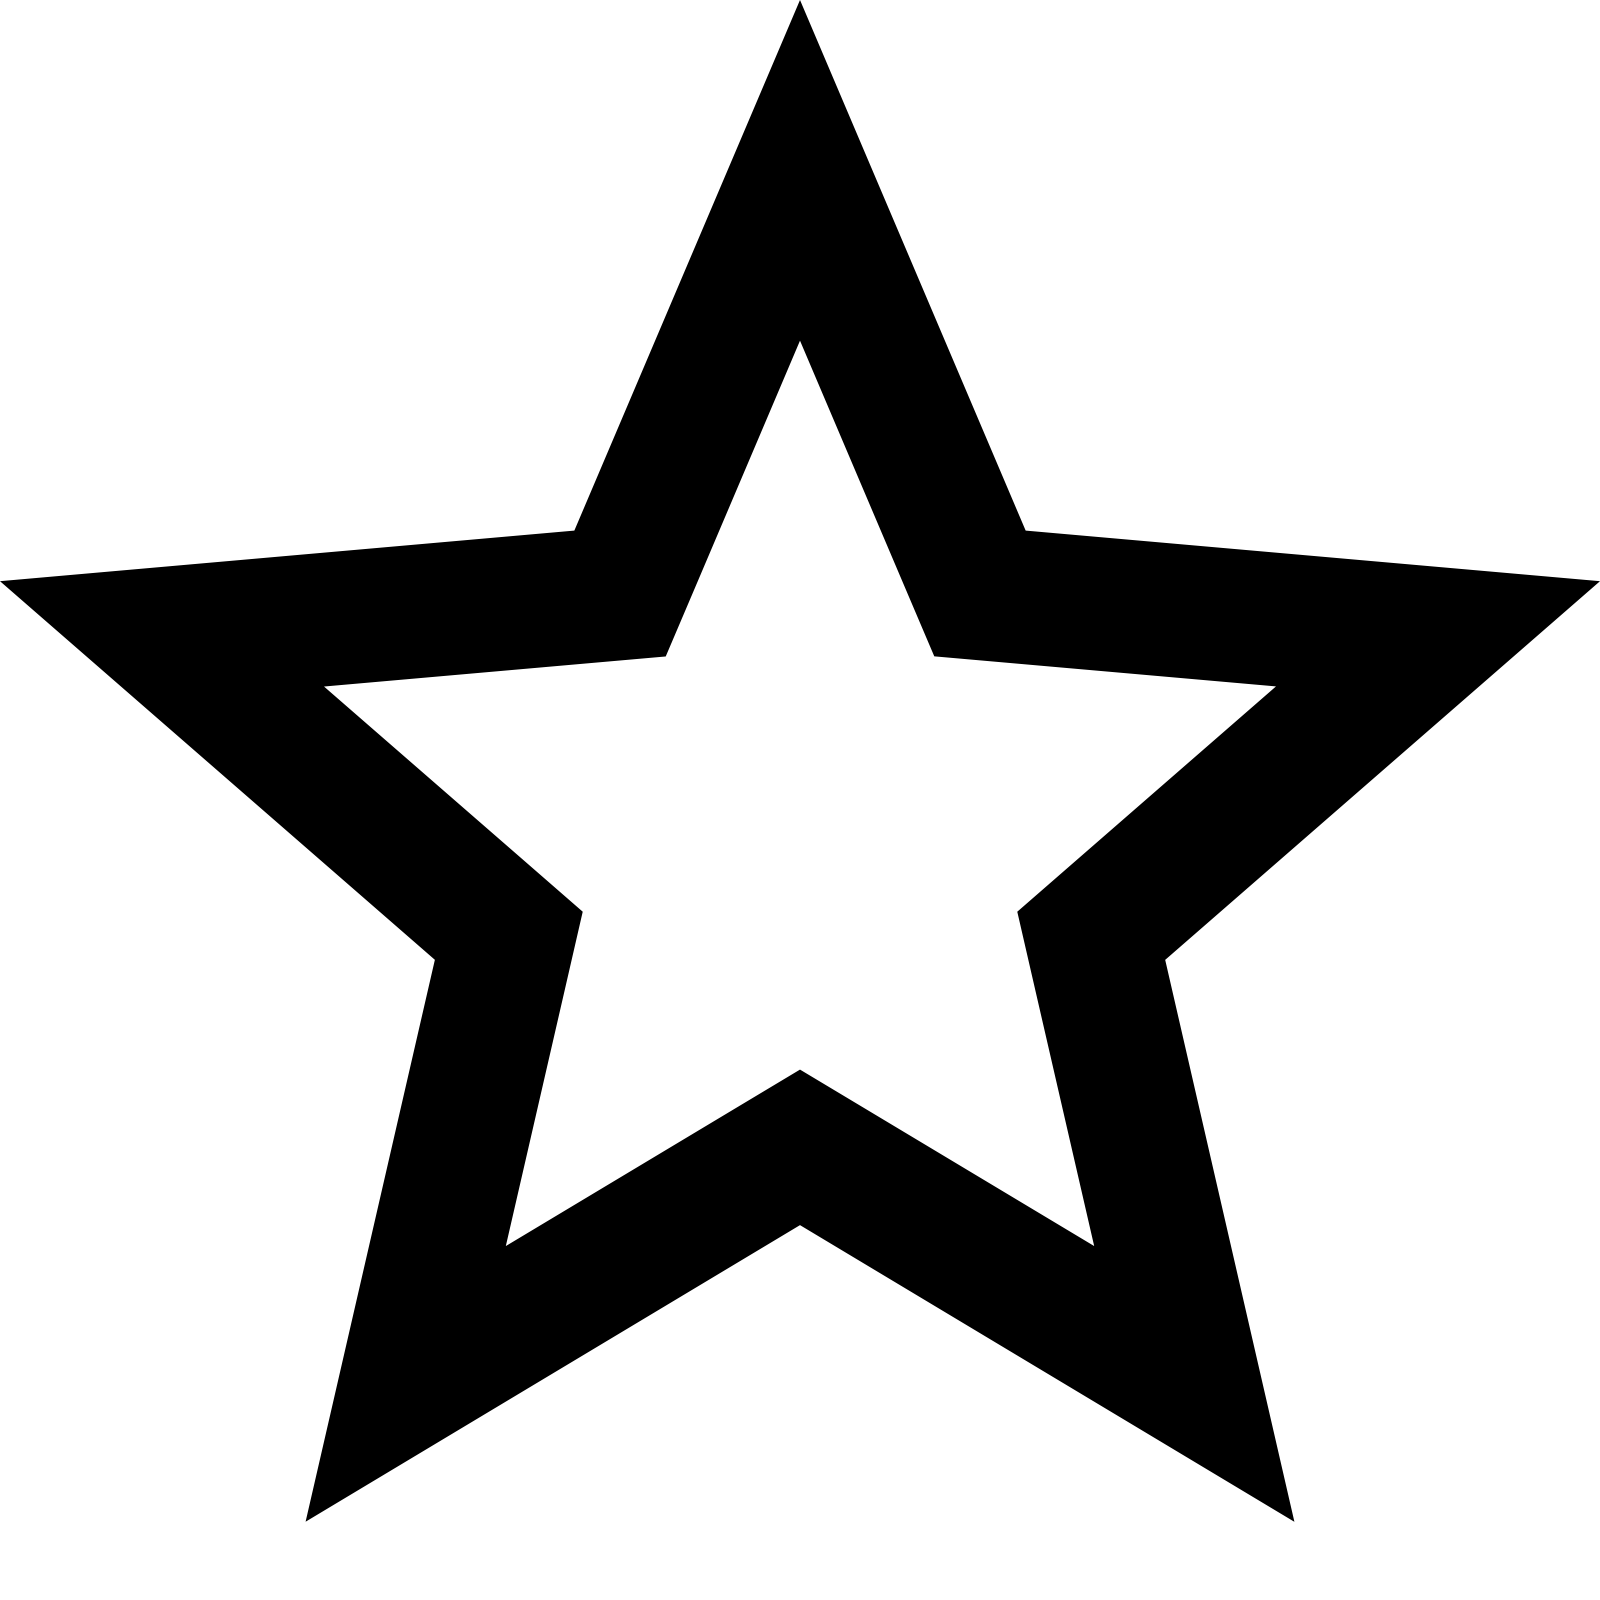 Star images clipart graphic free download star clipart android - Clipground graphic free download